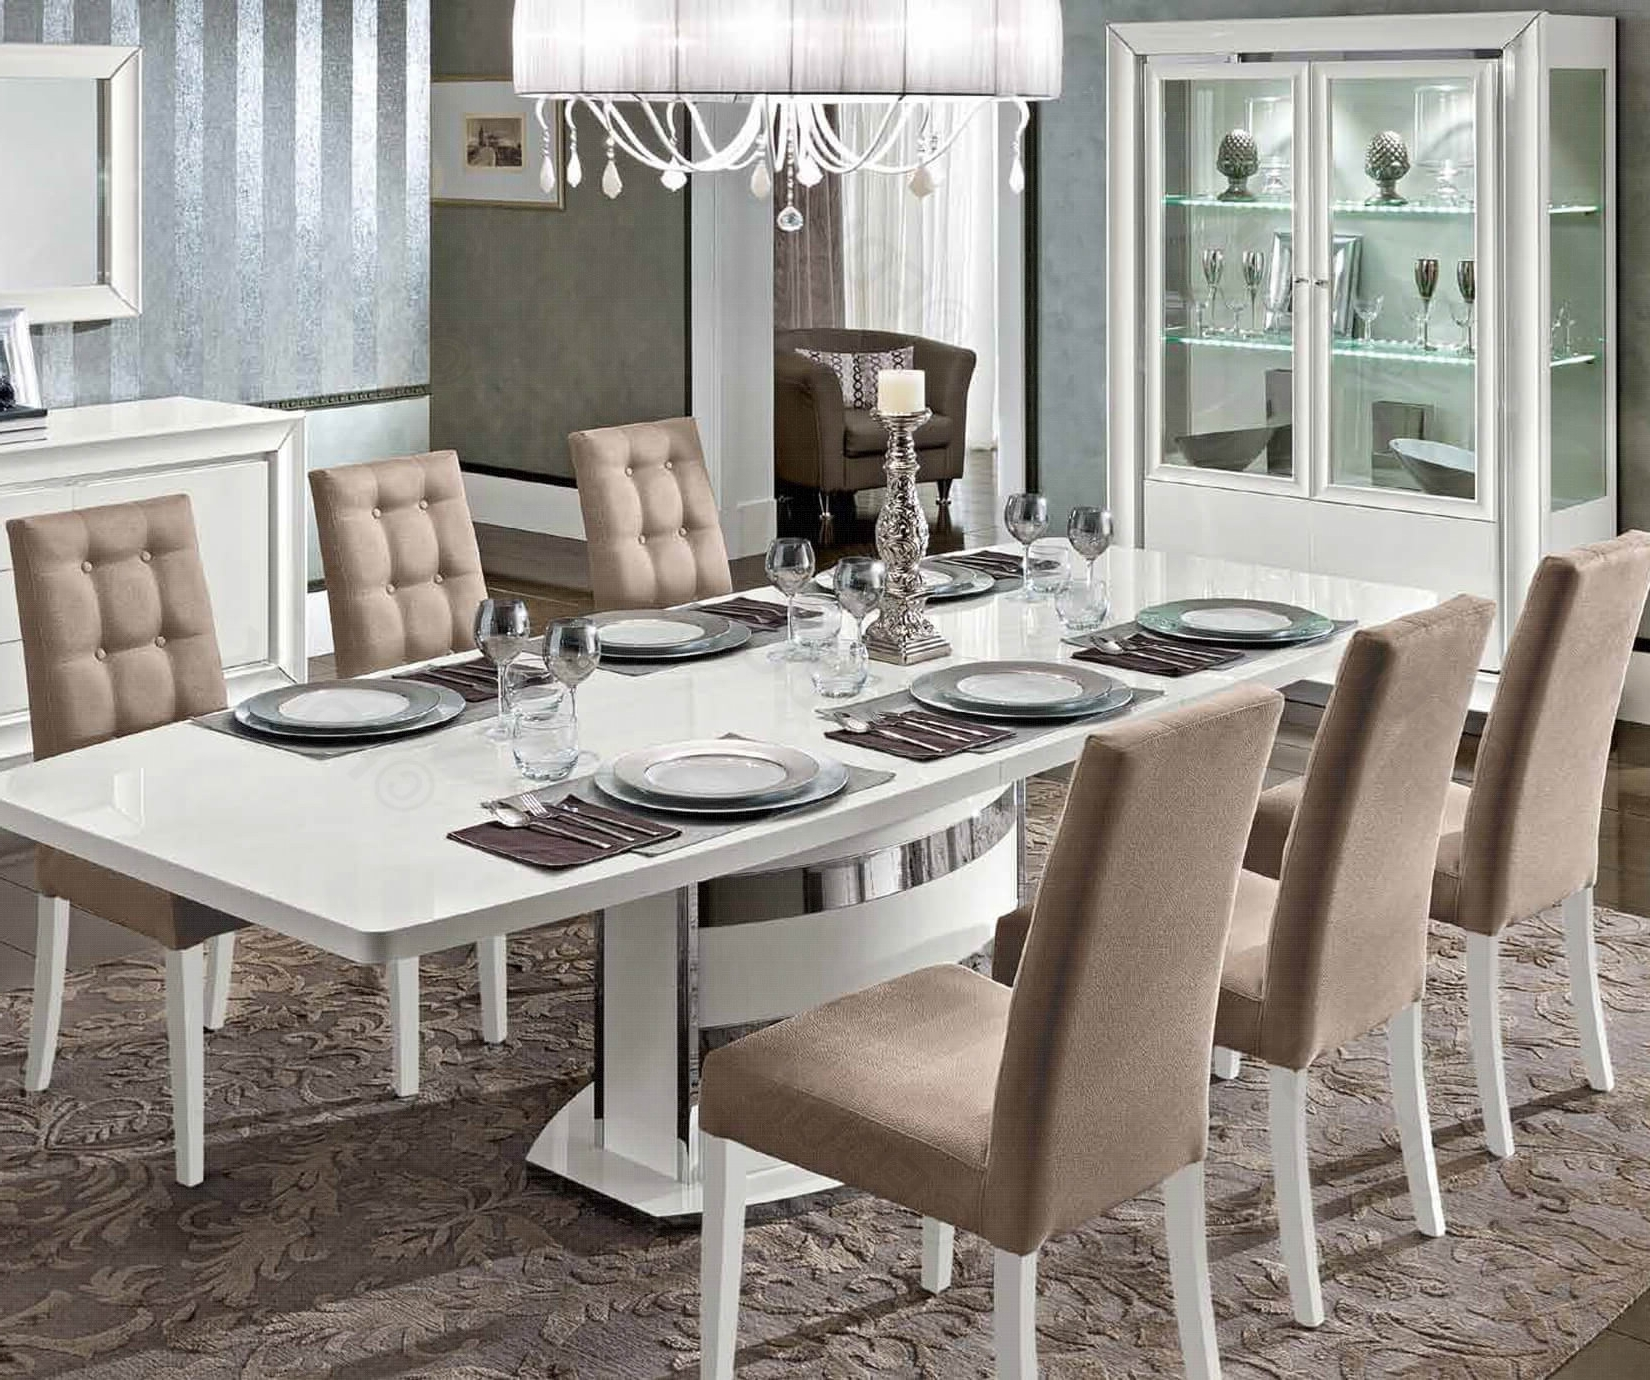 Dama Bianca White High Gloss Extending With Regard To Popular Black Gloss Extending Dining Tables (Gallery 5 of 25)